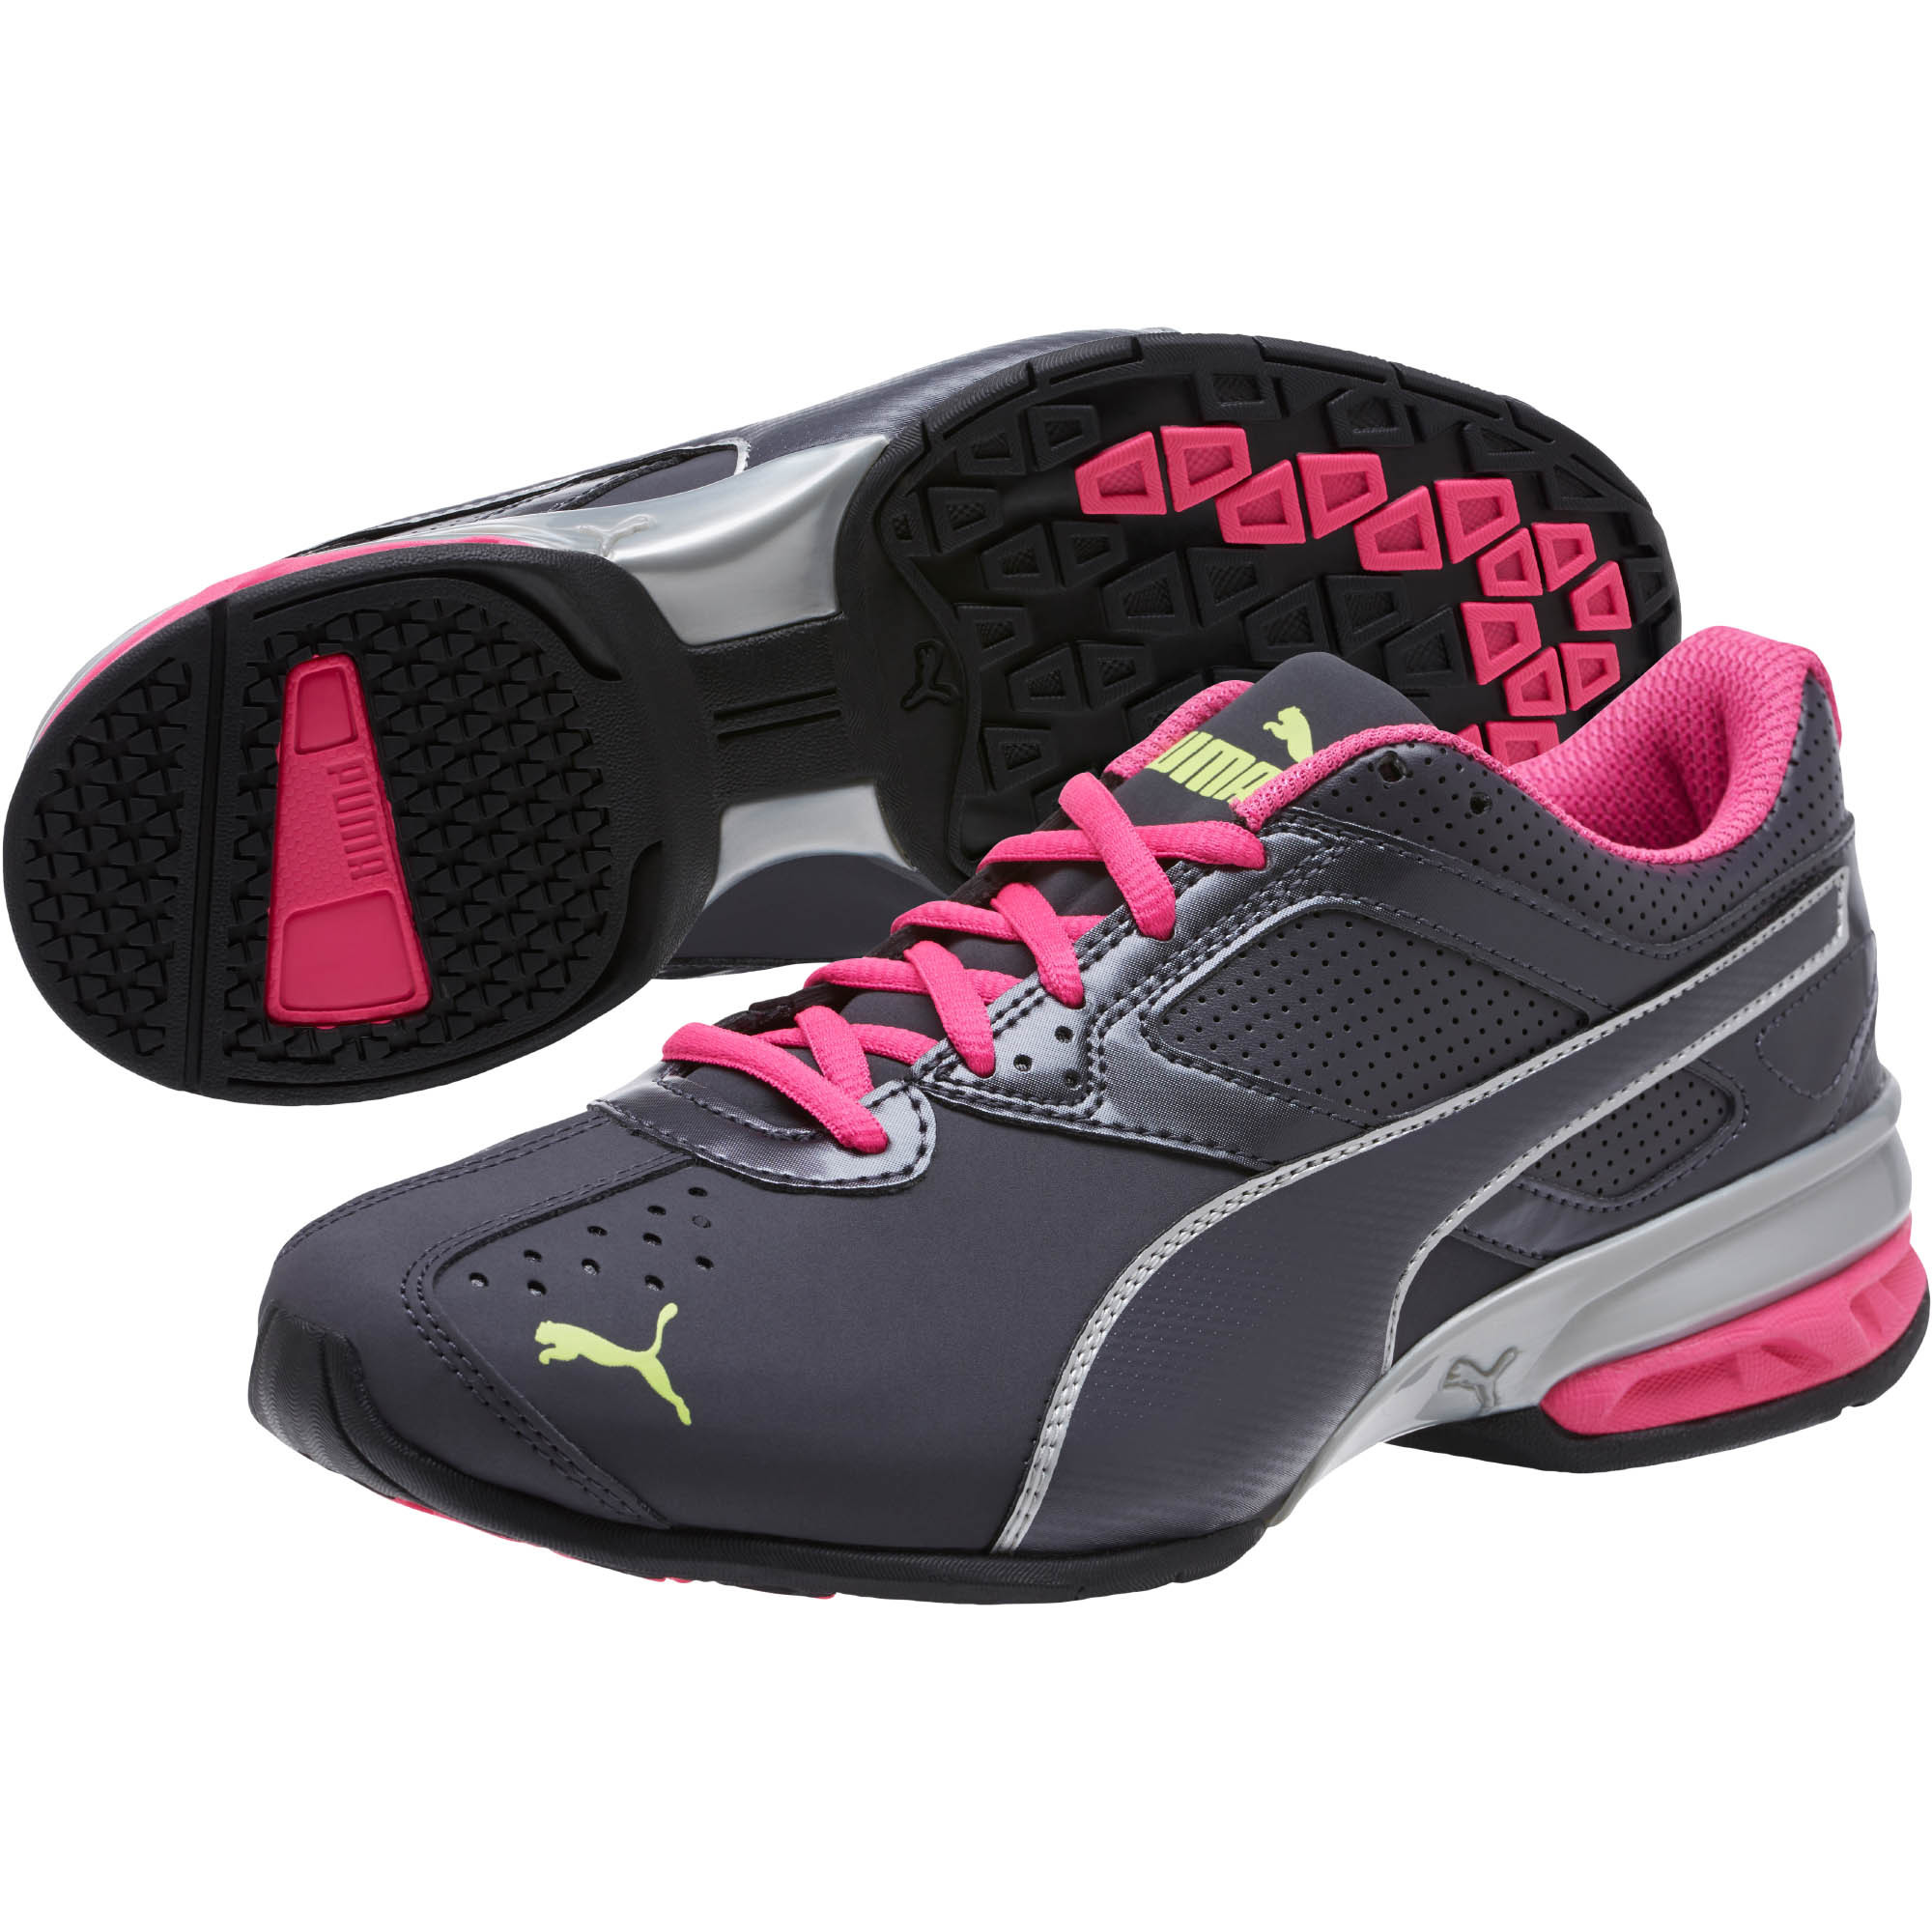 e0214c697f4 Official Puma Store  PUMA Tazon 6 FM Women s Sneakers